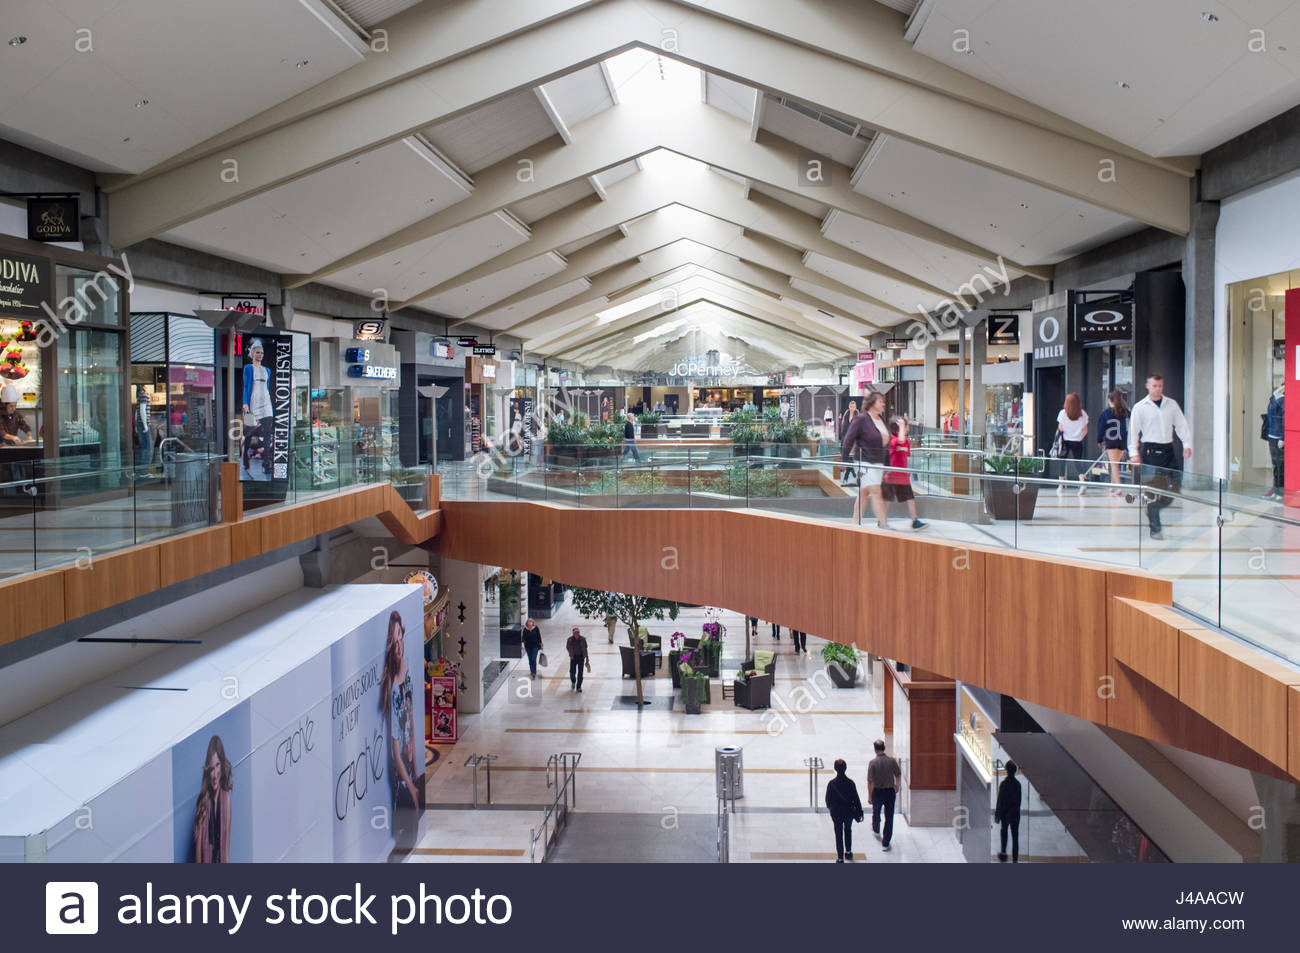 Bellevue Square Mall >> Vaulted Ceiling With Skylights In The Bellevue Square Shopping Stock